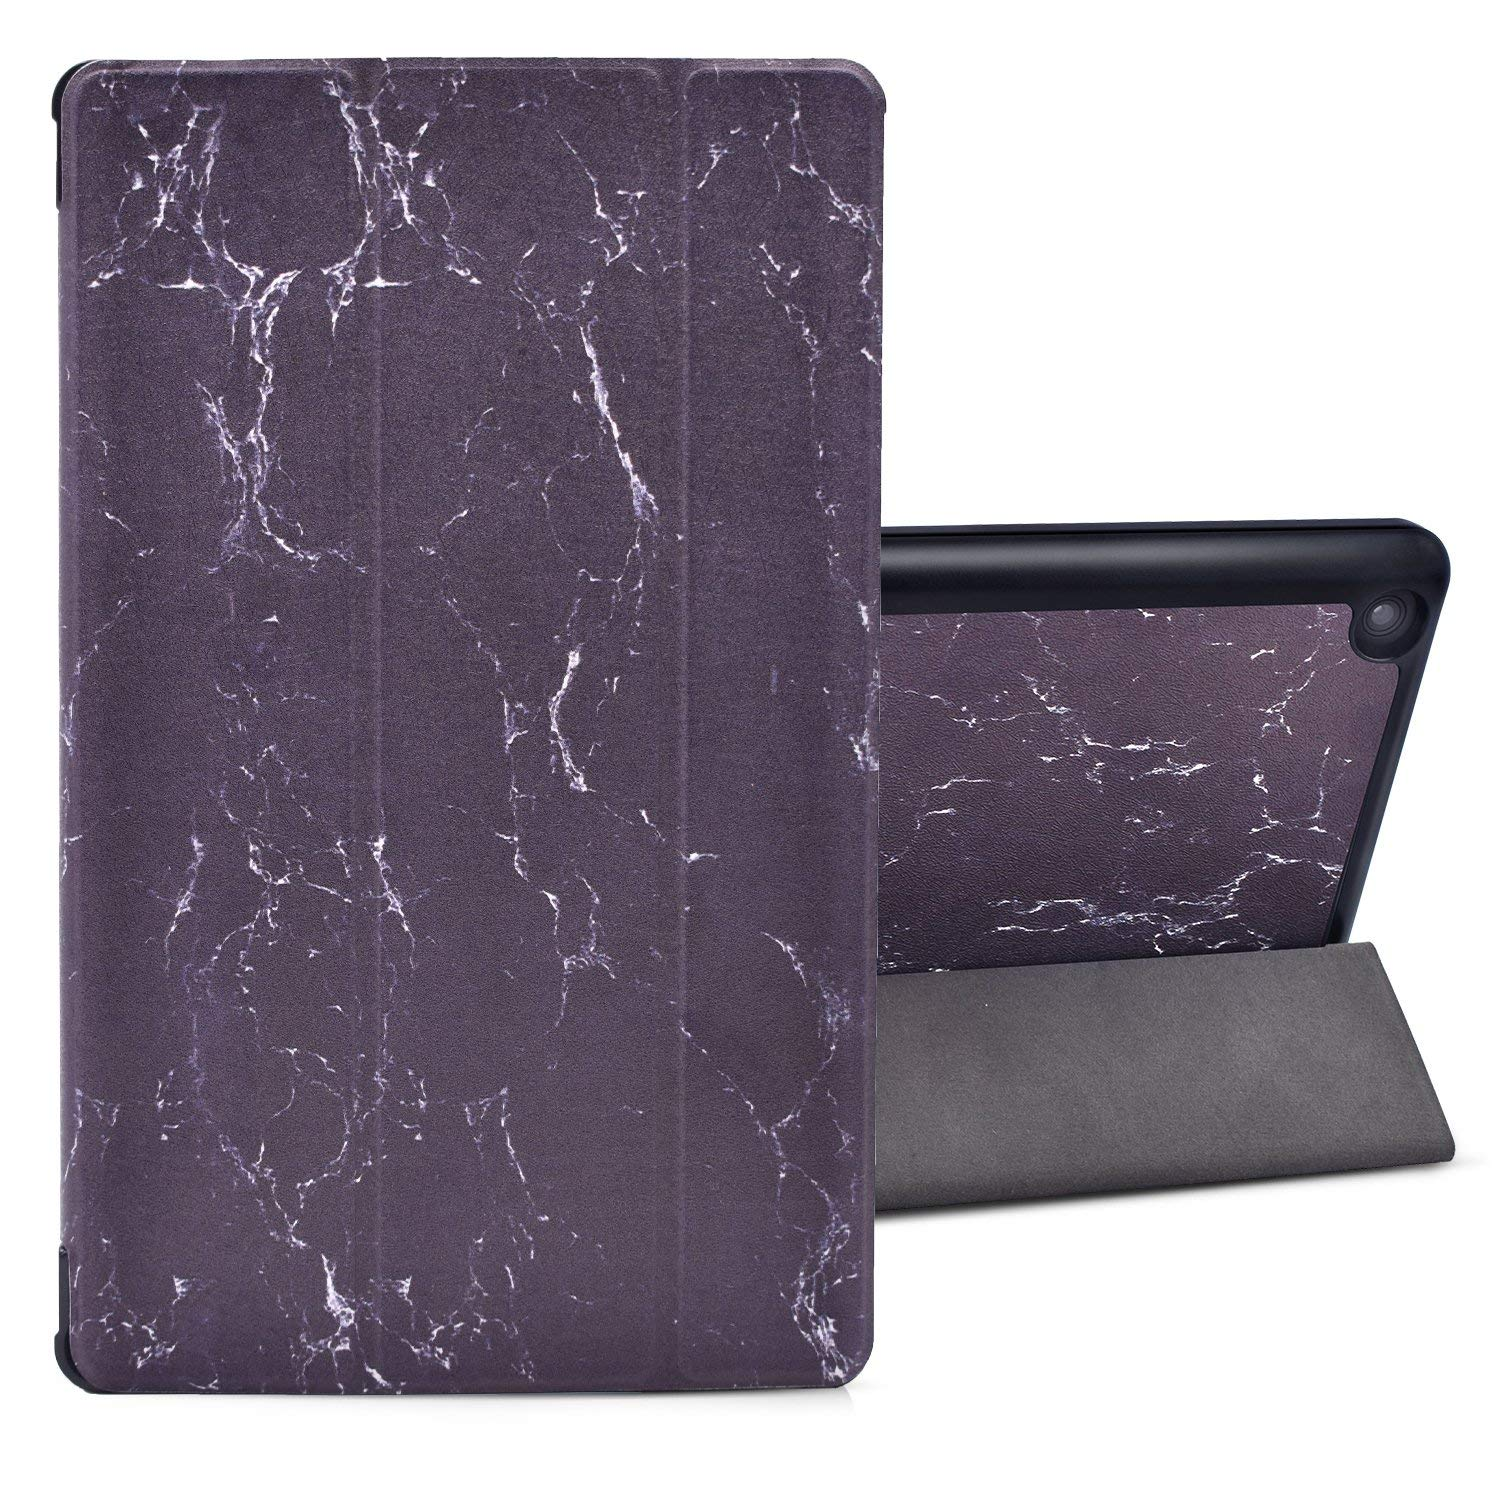 Great case, fits my tablet perfectly.